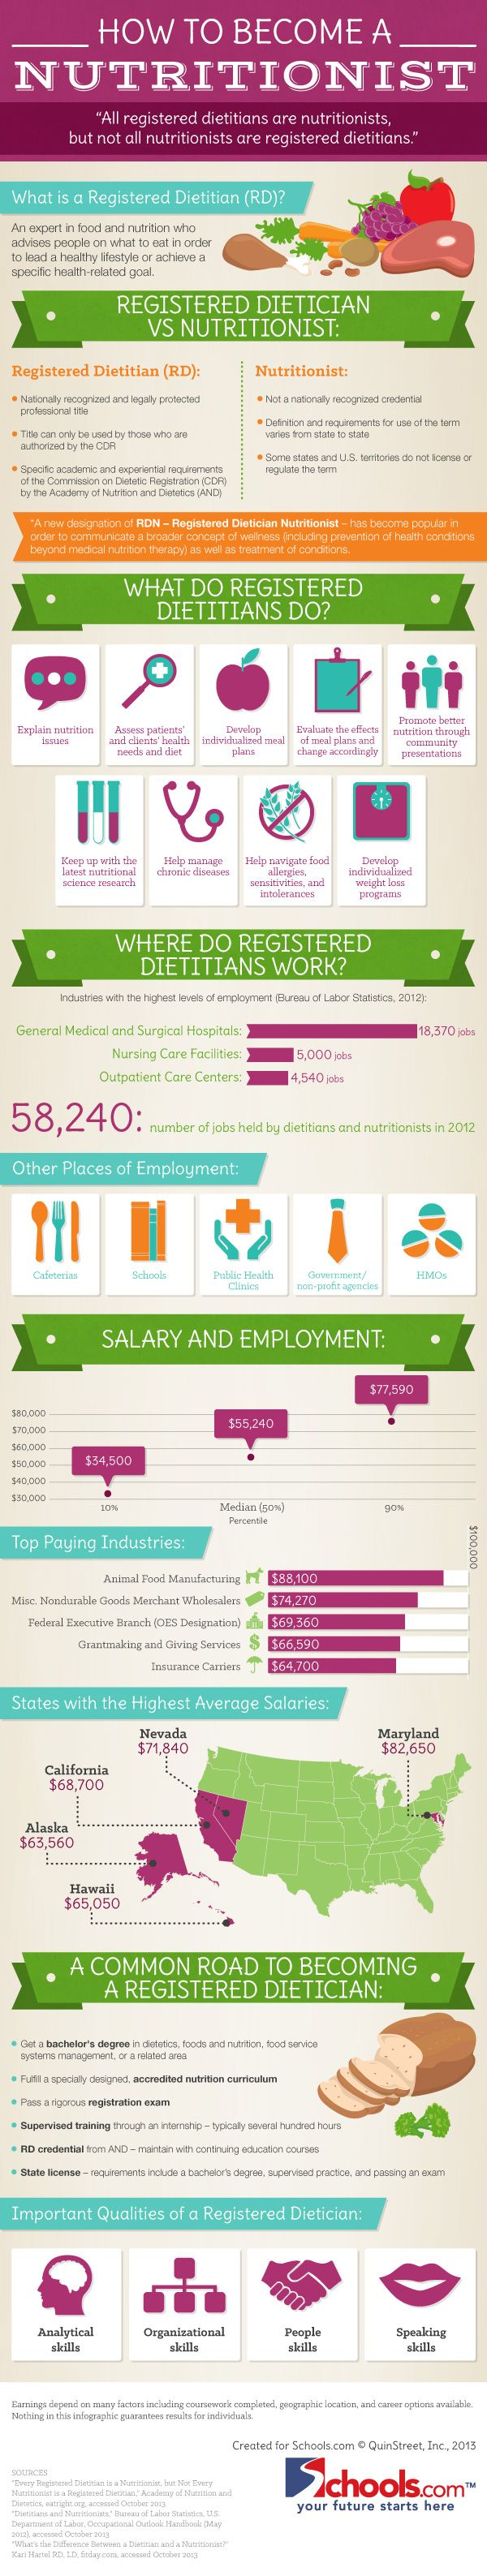 How to Become a Nutritionist or Registered Dietician: Careers and Education in Nutrition